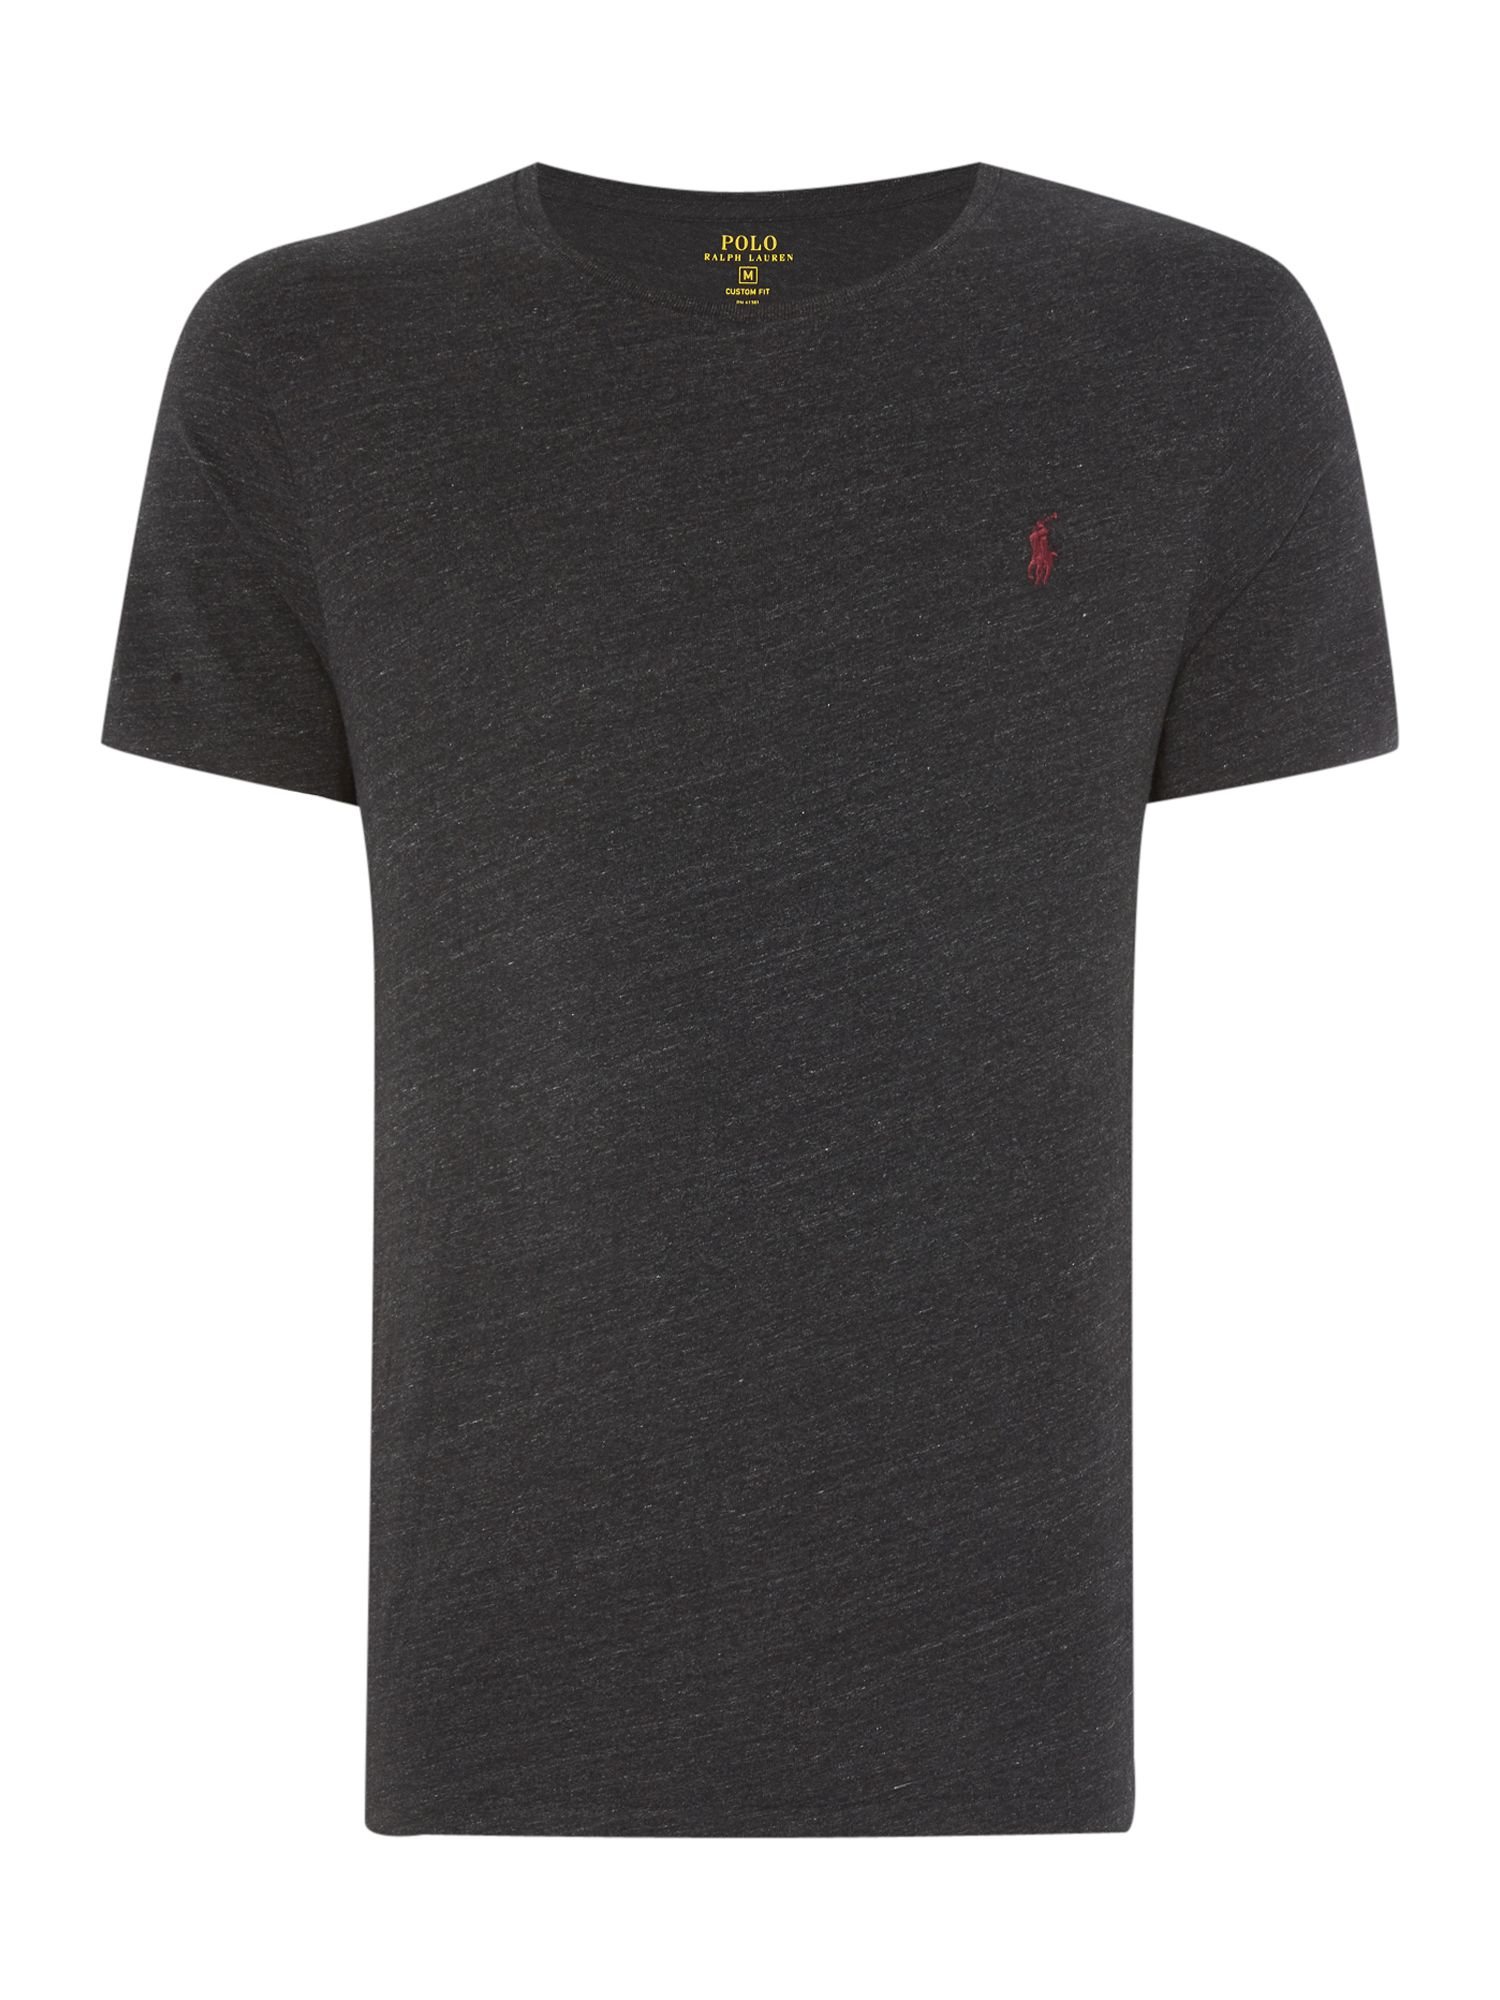 Polo ralph lauren crew neck custom fit t shirt in black for Custom fit t shirts